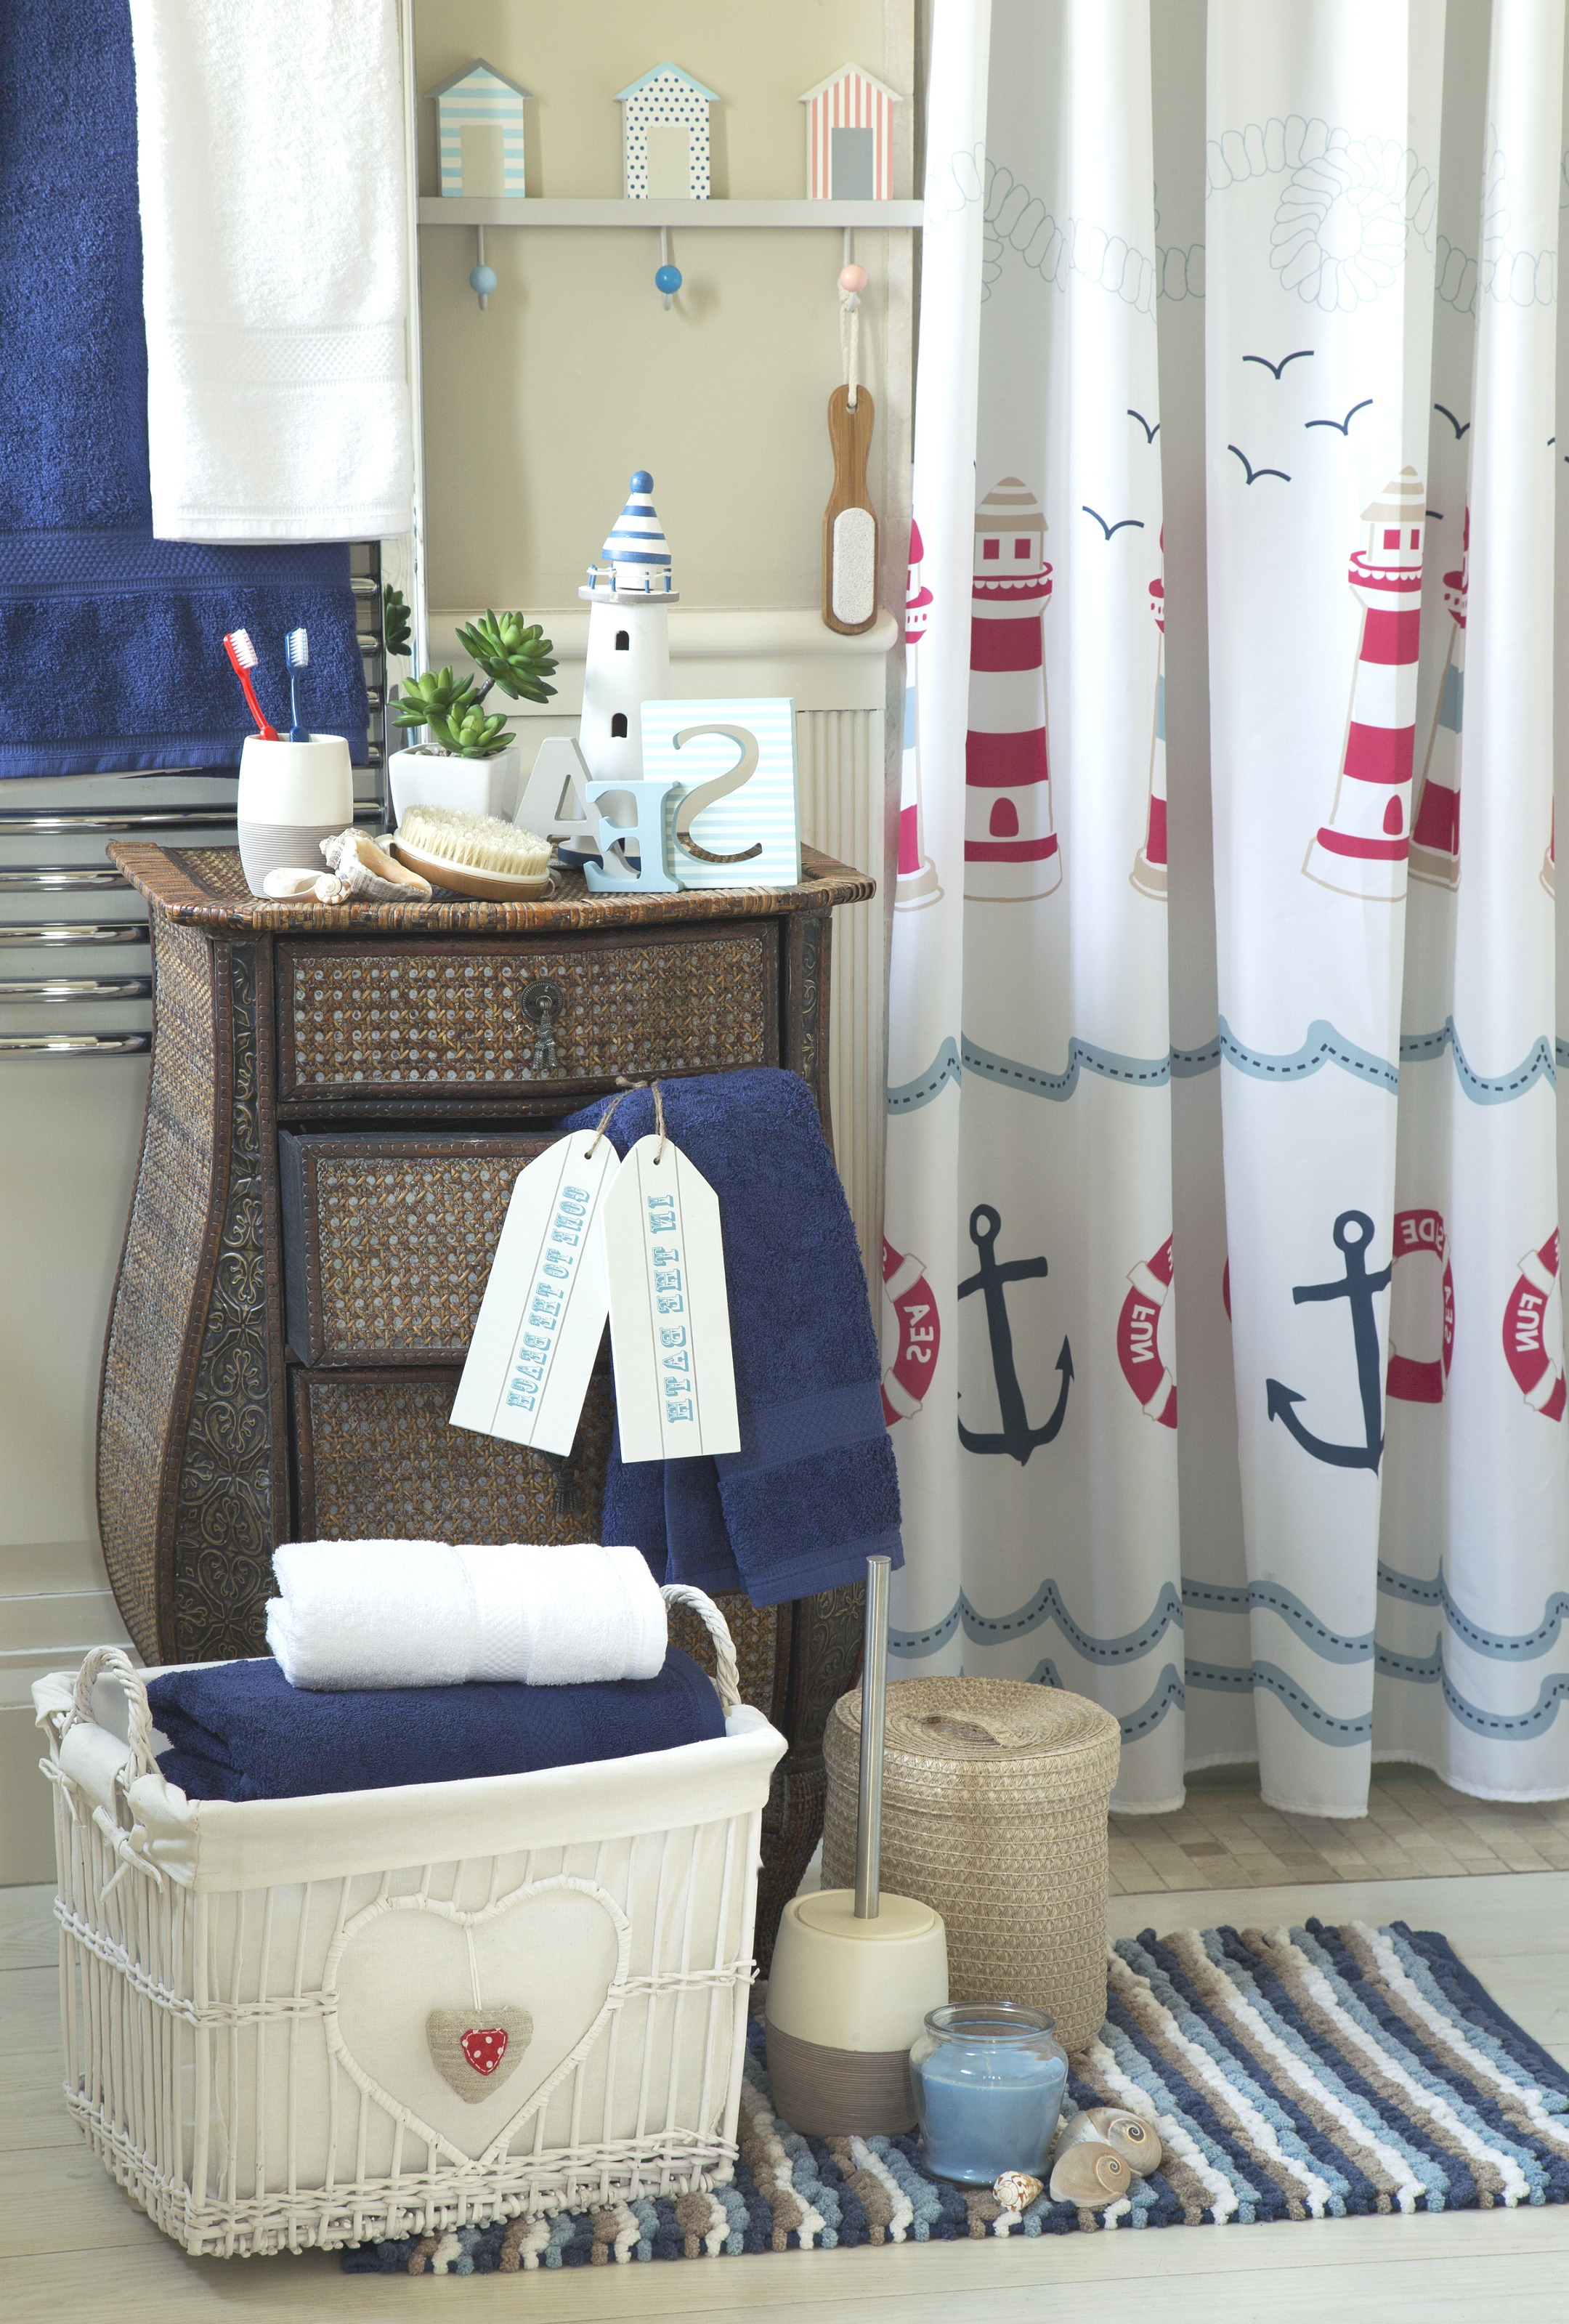 mesmerizing lighthouse nautical bath accessories ideas with rattan regarding nautical bathroom decor 50 ideas about nautical bathroom decor